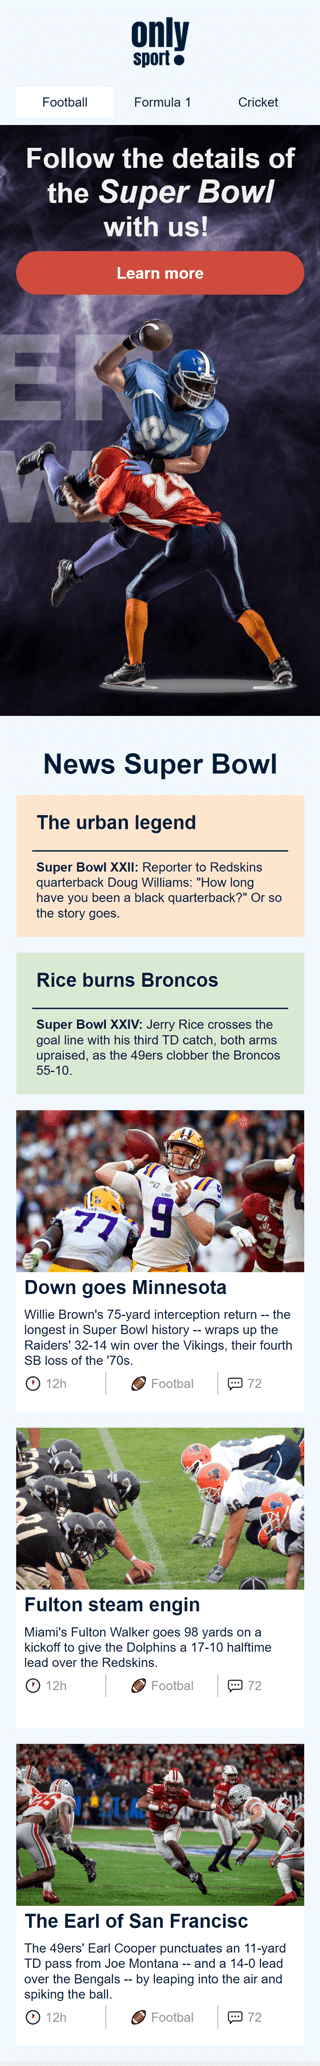 Super Bowl Email Template «Sport Blog» for Sports industry mobile view